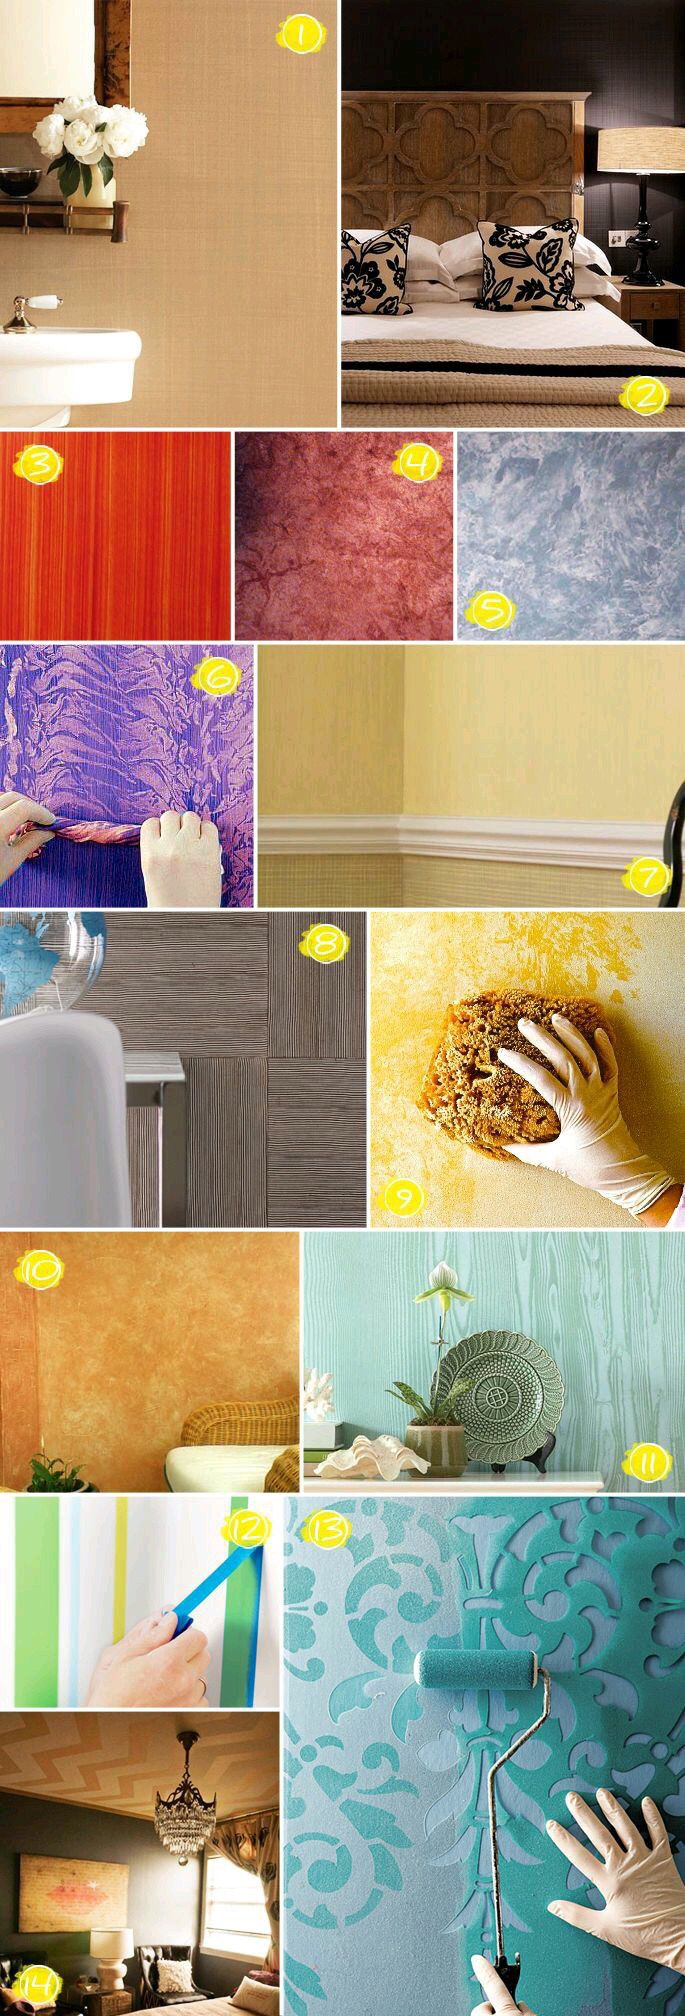 27 best Wallpaper & Wall Treatments images on Pinterest | Wall ...